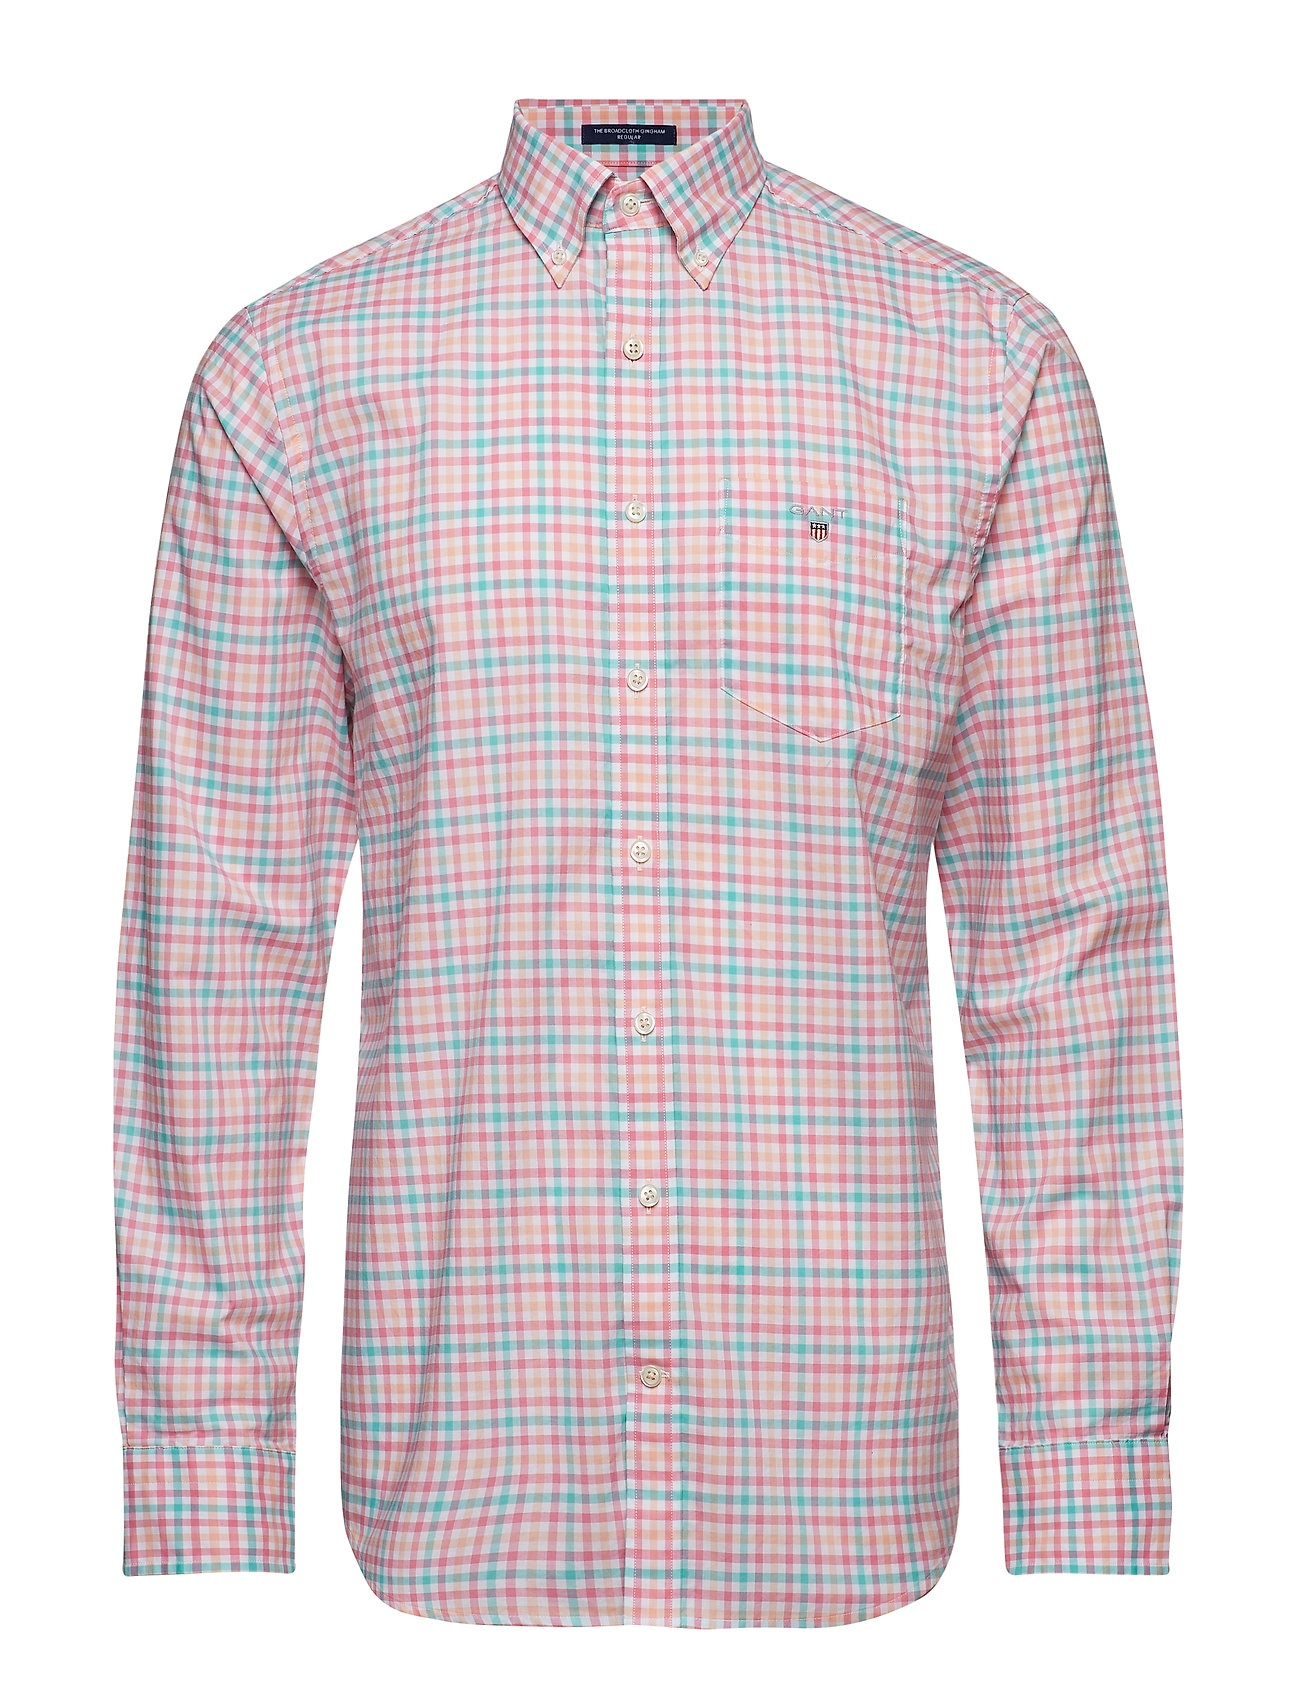 The B Gingham Col Bdpink 3 Reg RoseGant cloth kZOiuPX